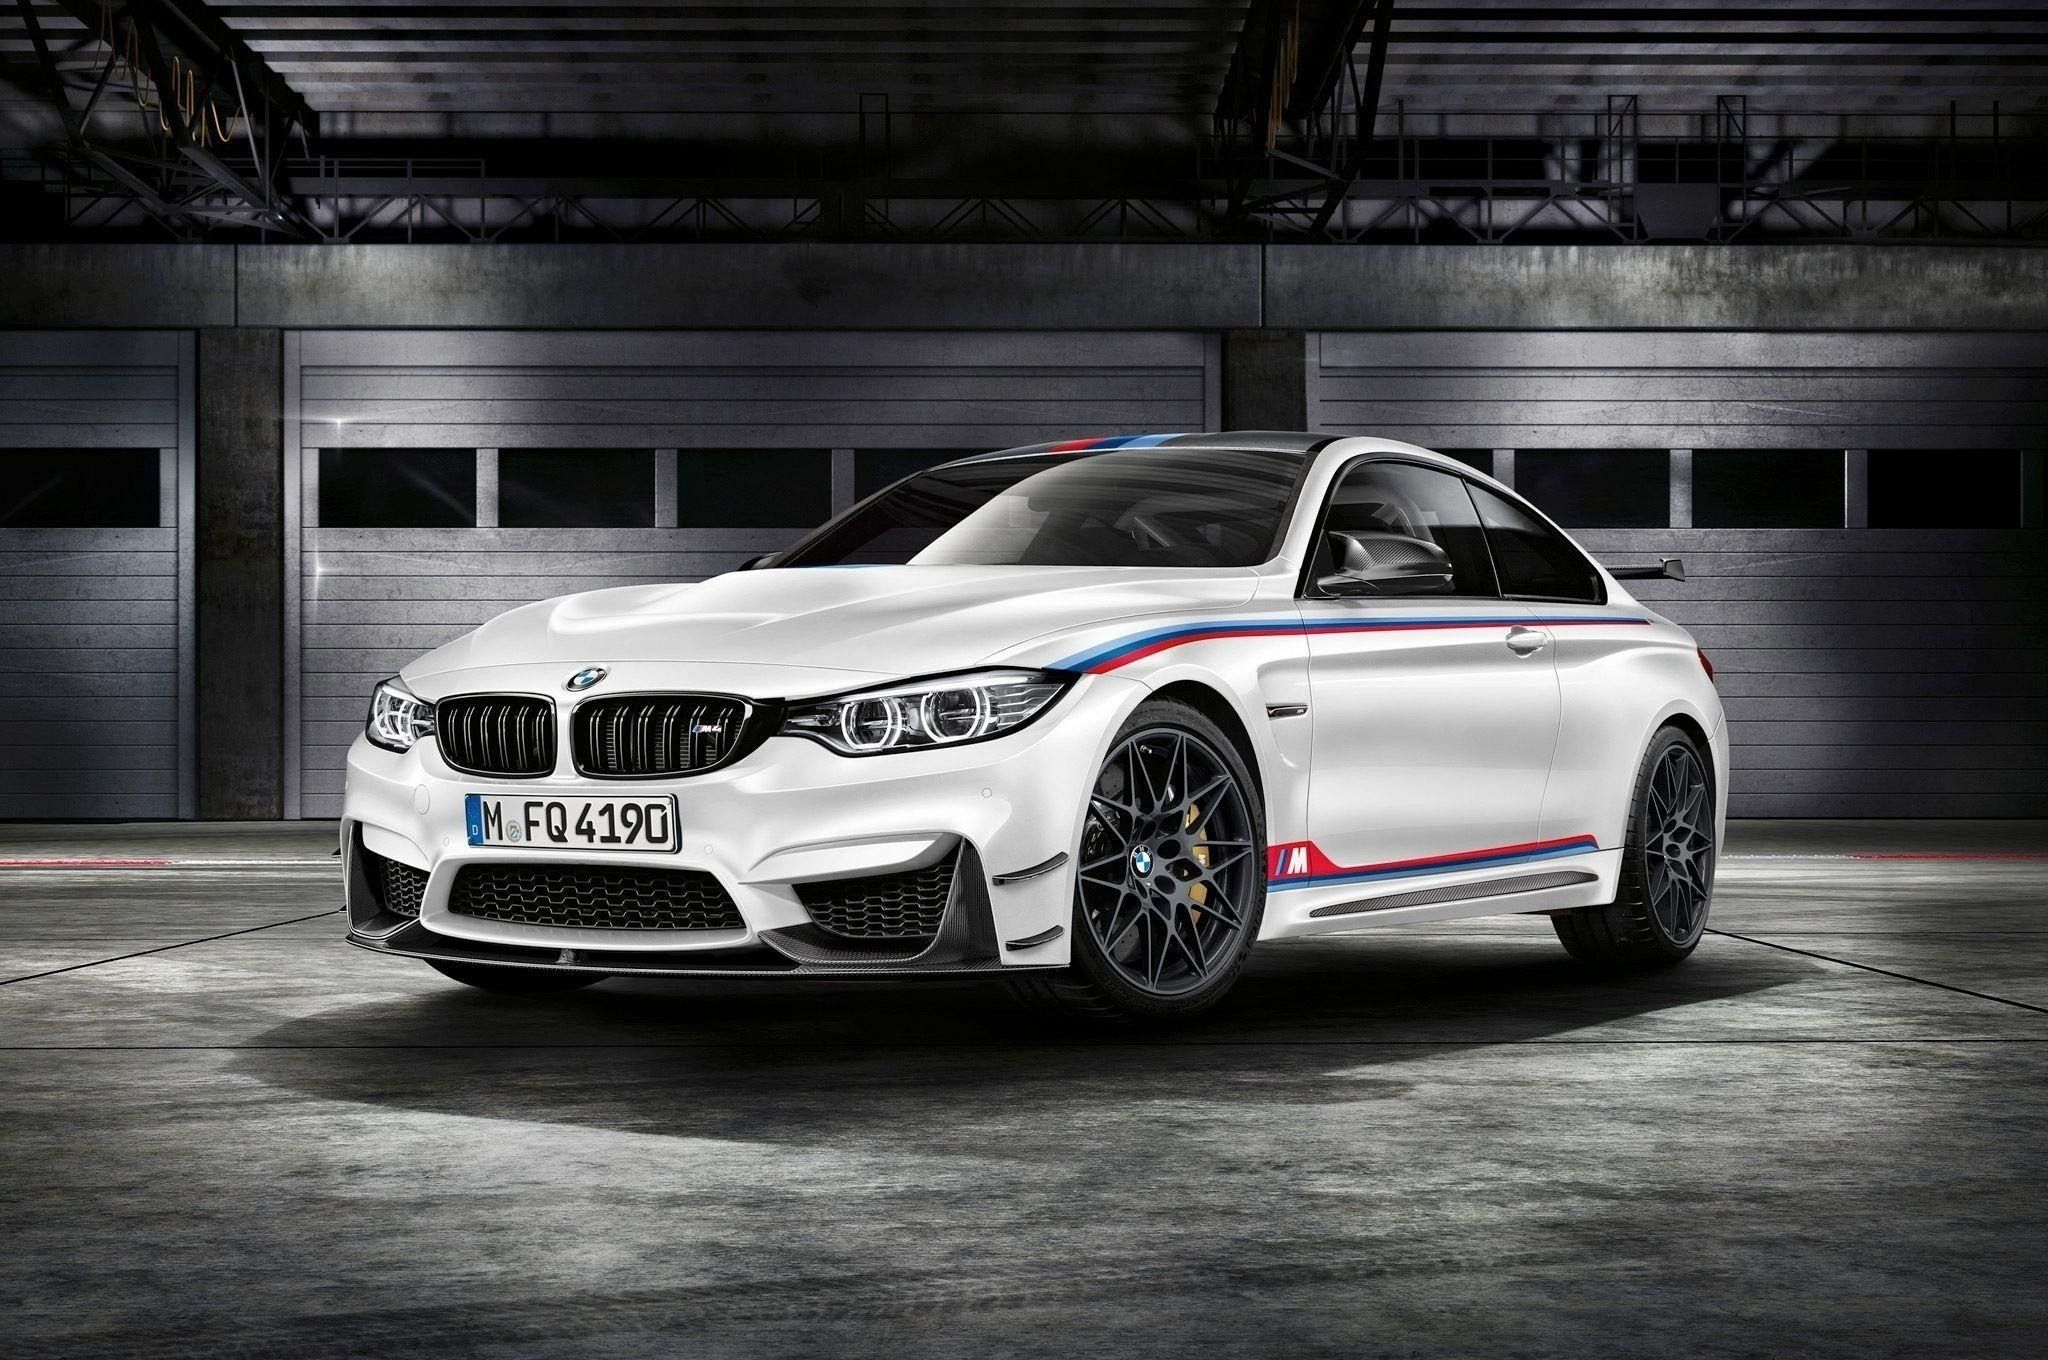 2019 Bmw M4 Gts New Interior Cars Picture Pinterest Bmw Cars